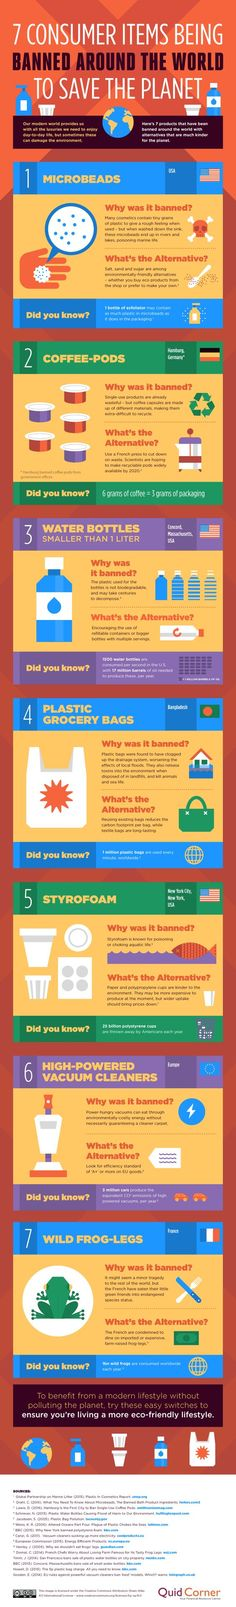 7 Consumer Items Being Banned Around the World to Save the Planet #Infographic #Plastic #Travel